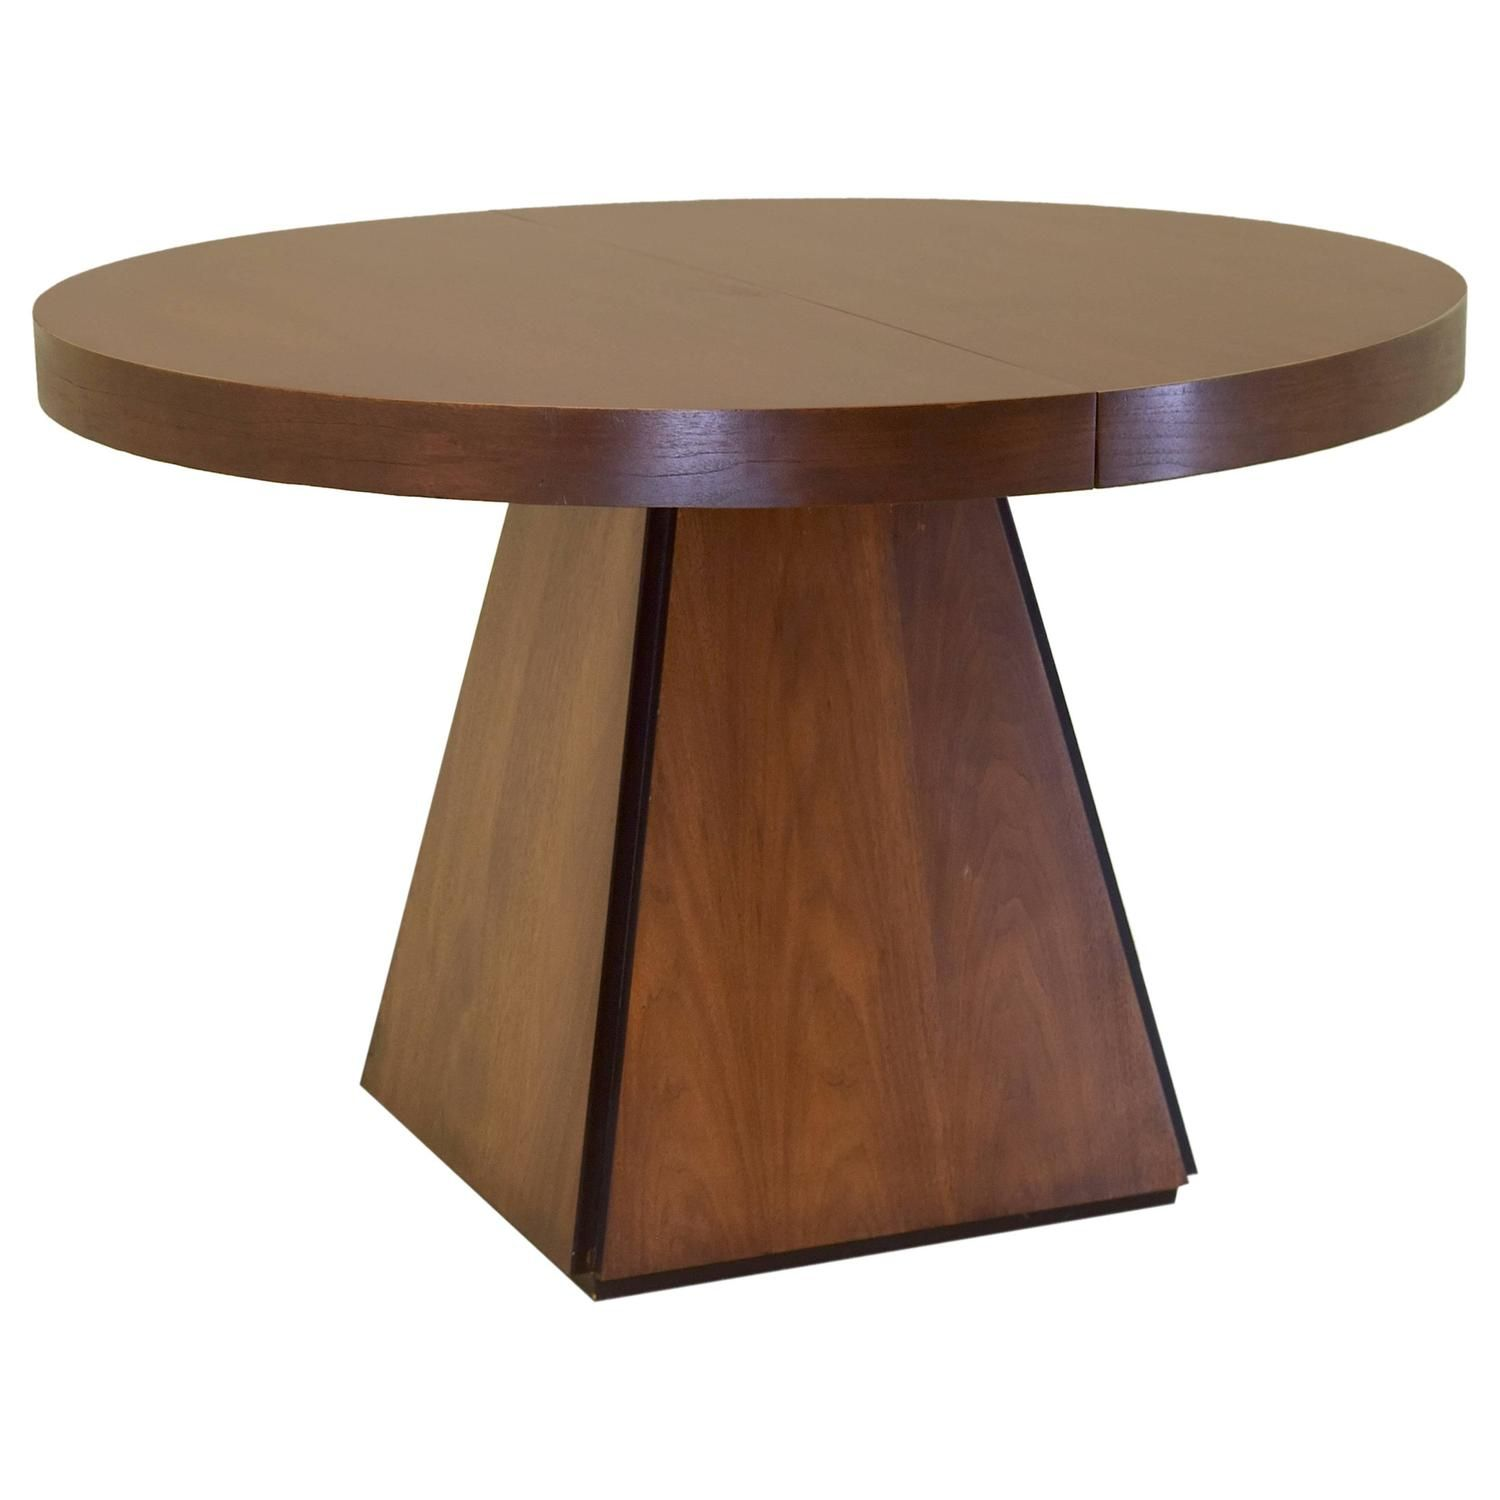 Pierre Cardin Round Obelisk Dining Table In Walnut With Extension